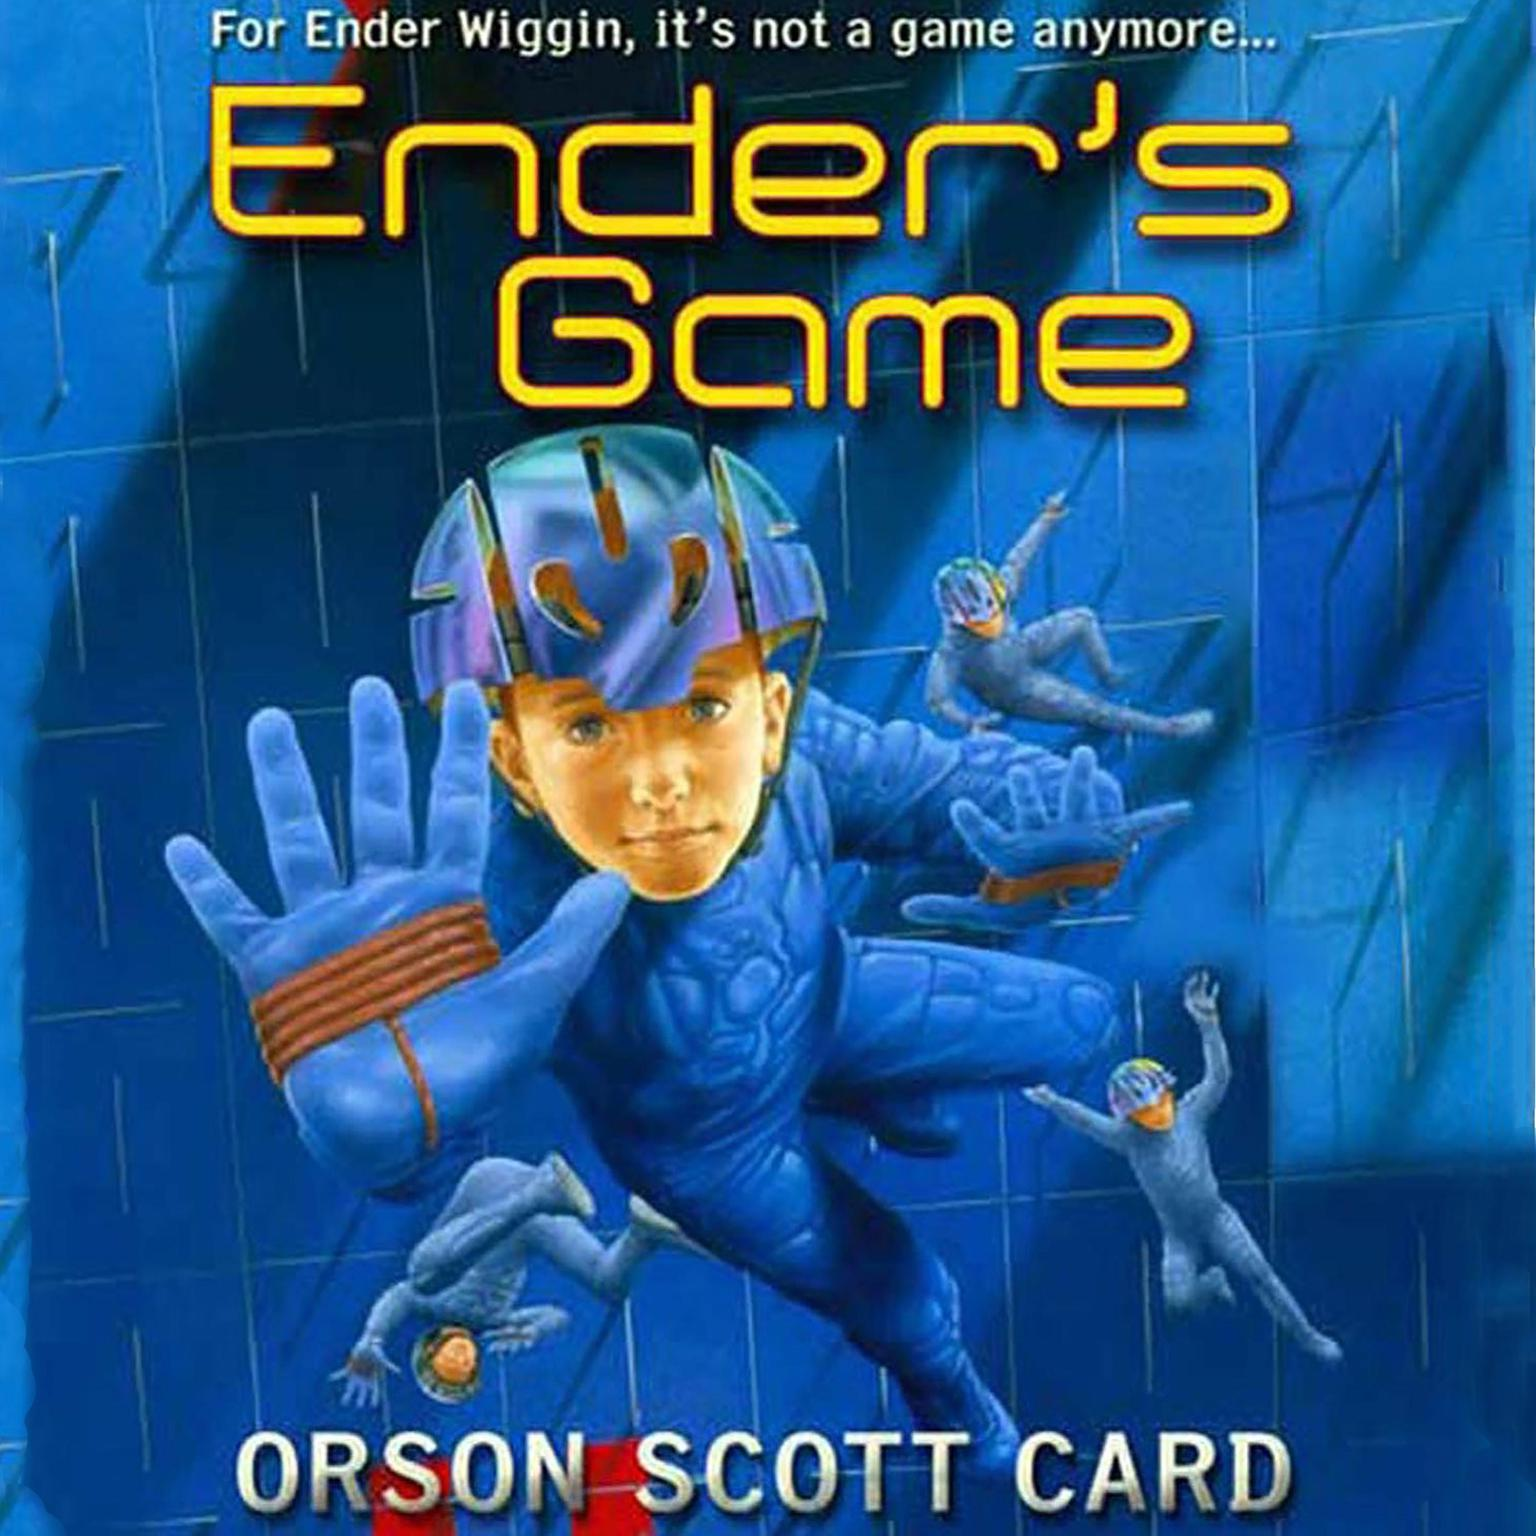 a report on the book enders game by orson scott card Paperback 2013 book condition: new the worldwide bestseller, ender's game by orson scott card comes to the screen at last in a major motion picture event in november 2013 starring hugo's asa butterfield, harrison ford, and ben kingsley, the movie is sure to inspire a new audience of fans to read the book that started it all.